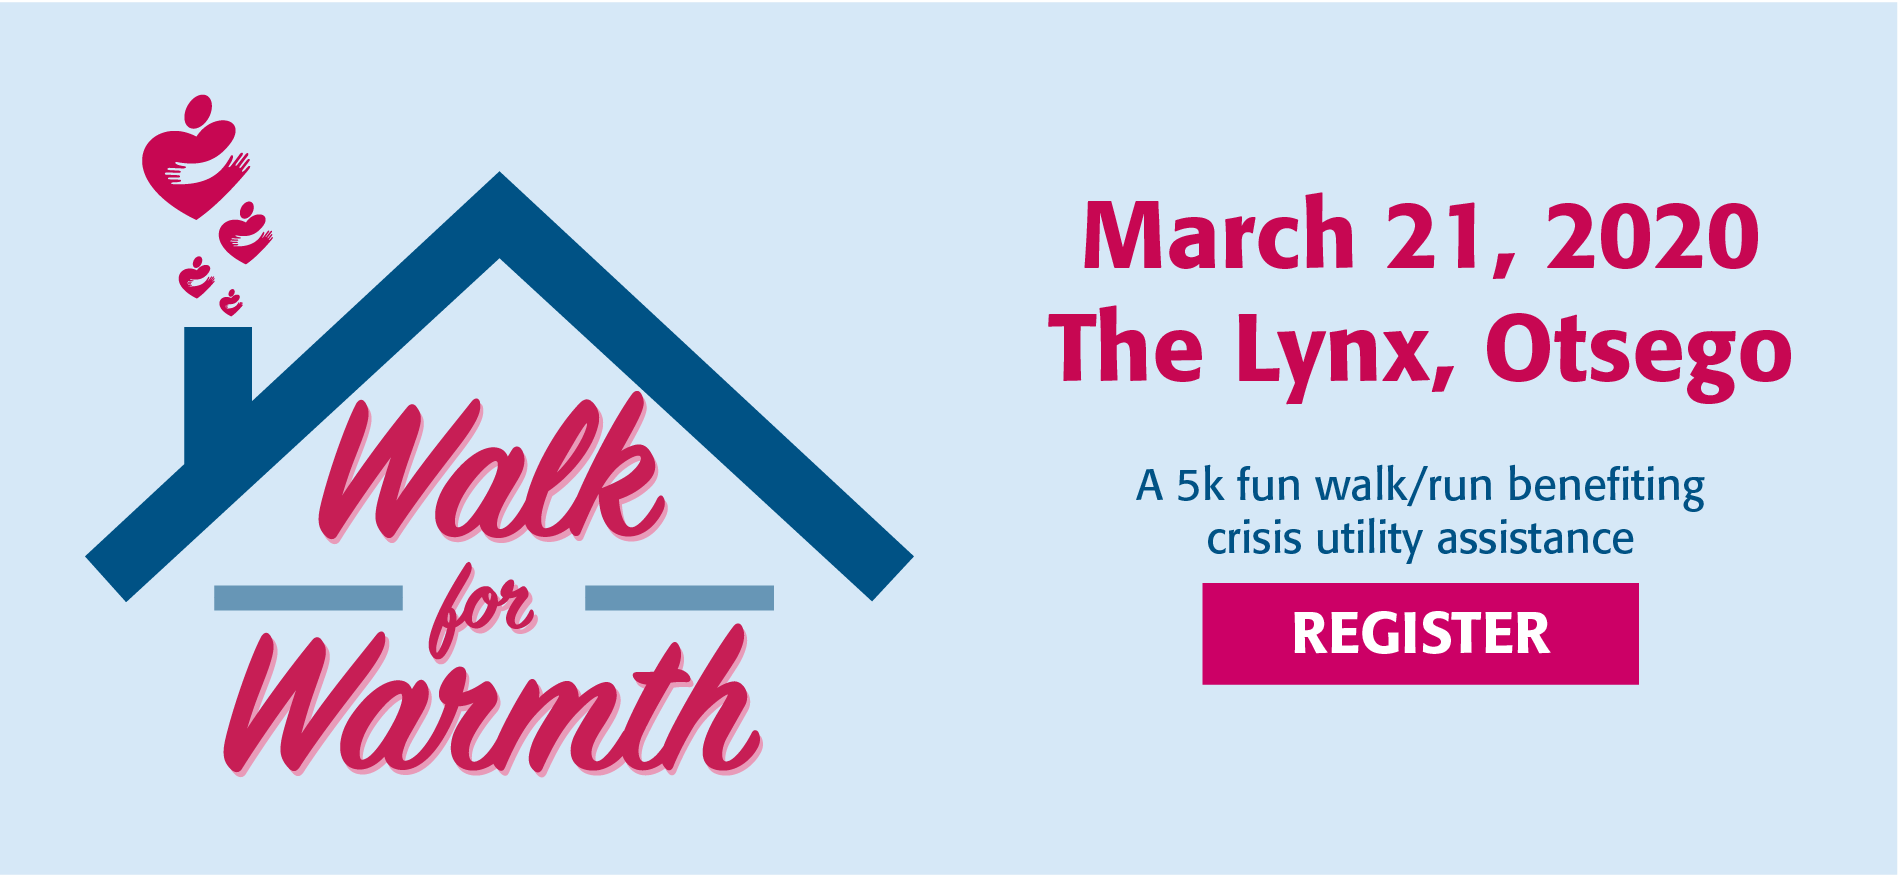 Walk for Warmth March 21